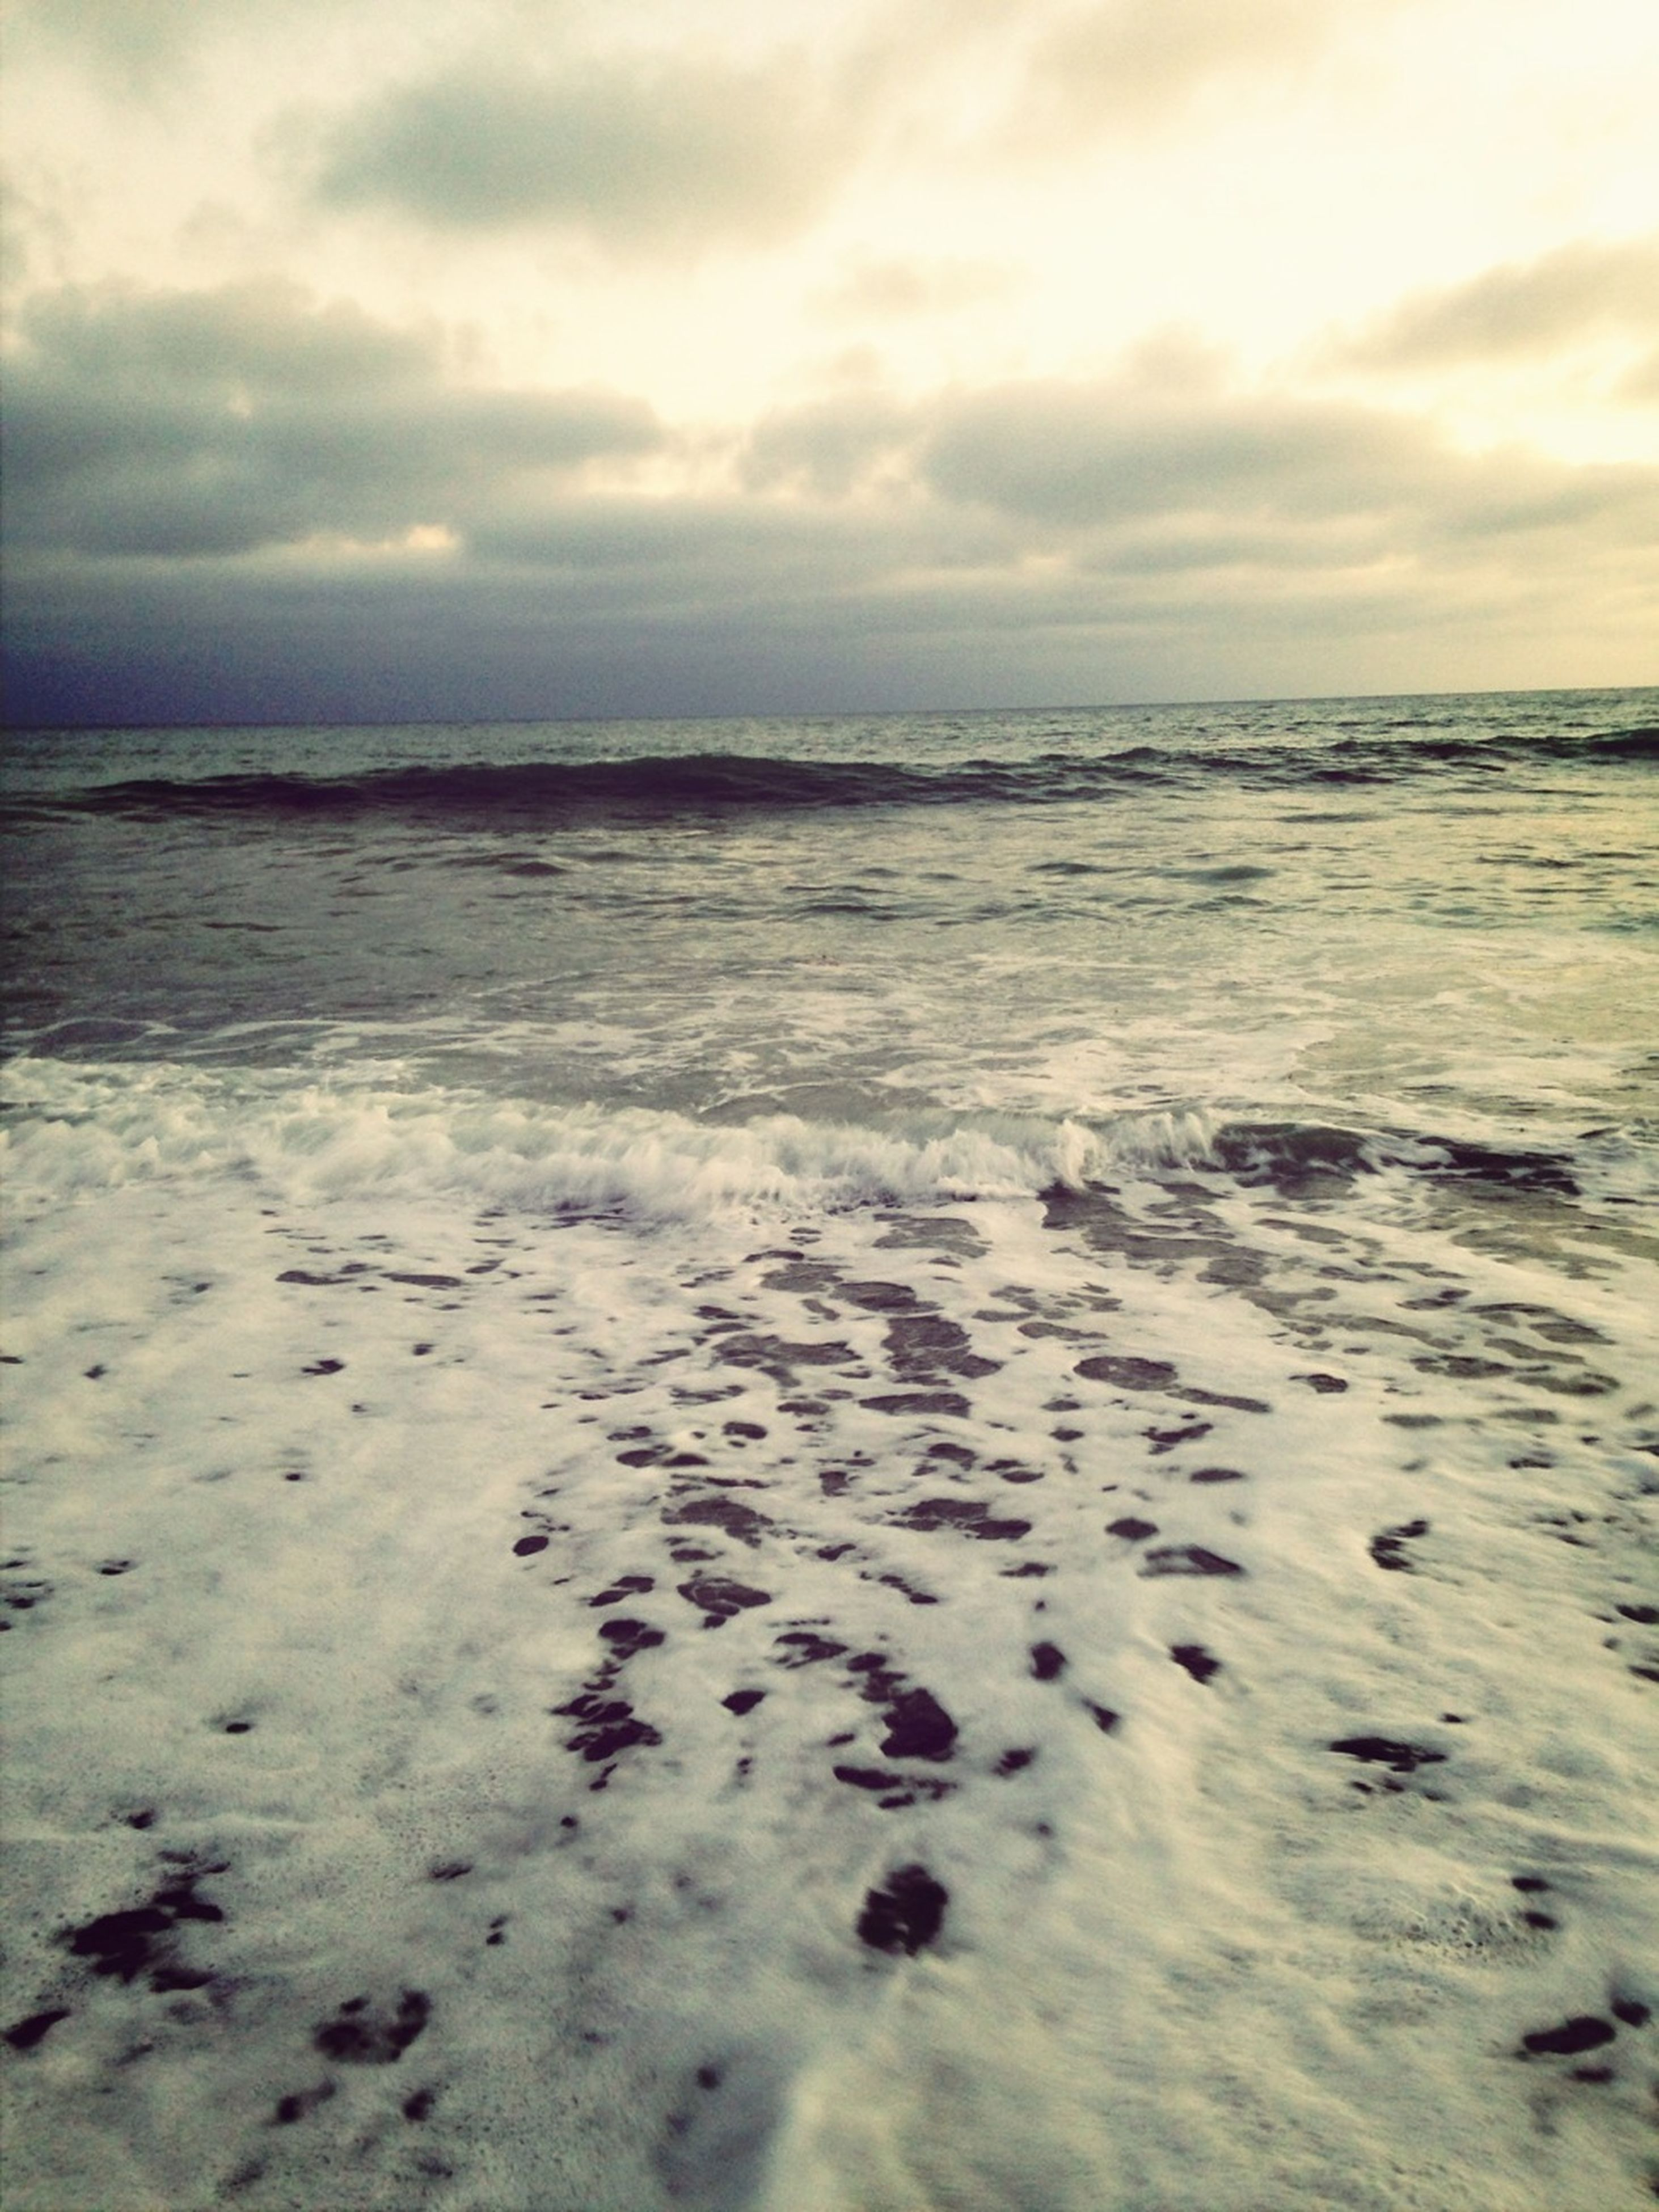 sea, water, sky, tranquil scene, scenics, tranquility, cloud - sky, beauty in nature, horizon over water, cloudy, beach, nature, weather, shore, idyllic, cloud, wave, overcast, dusk, waterfront